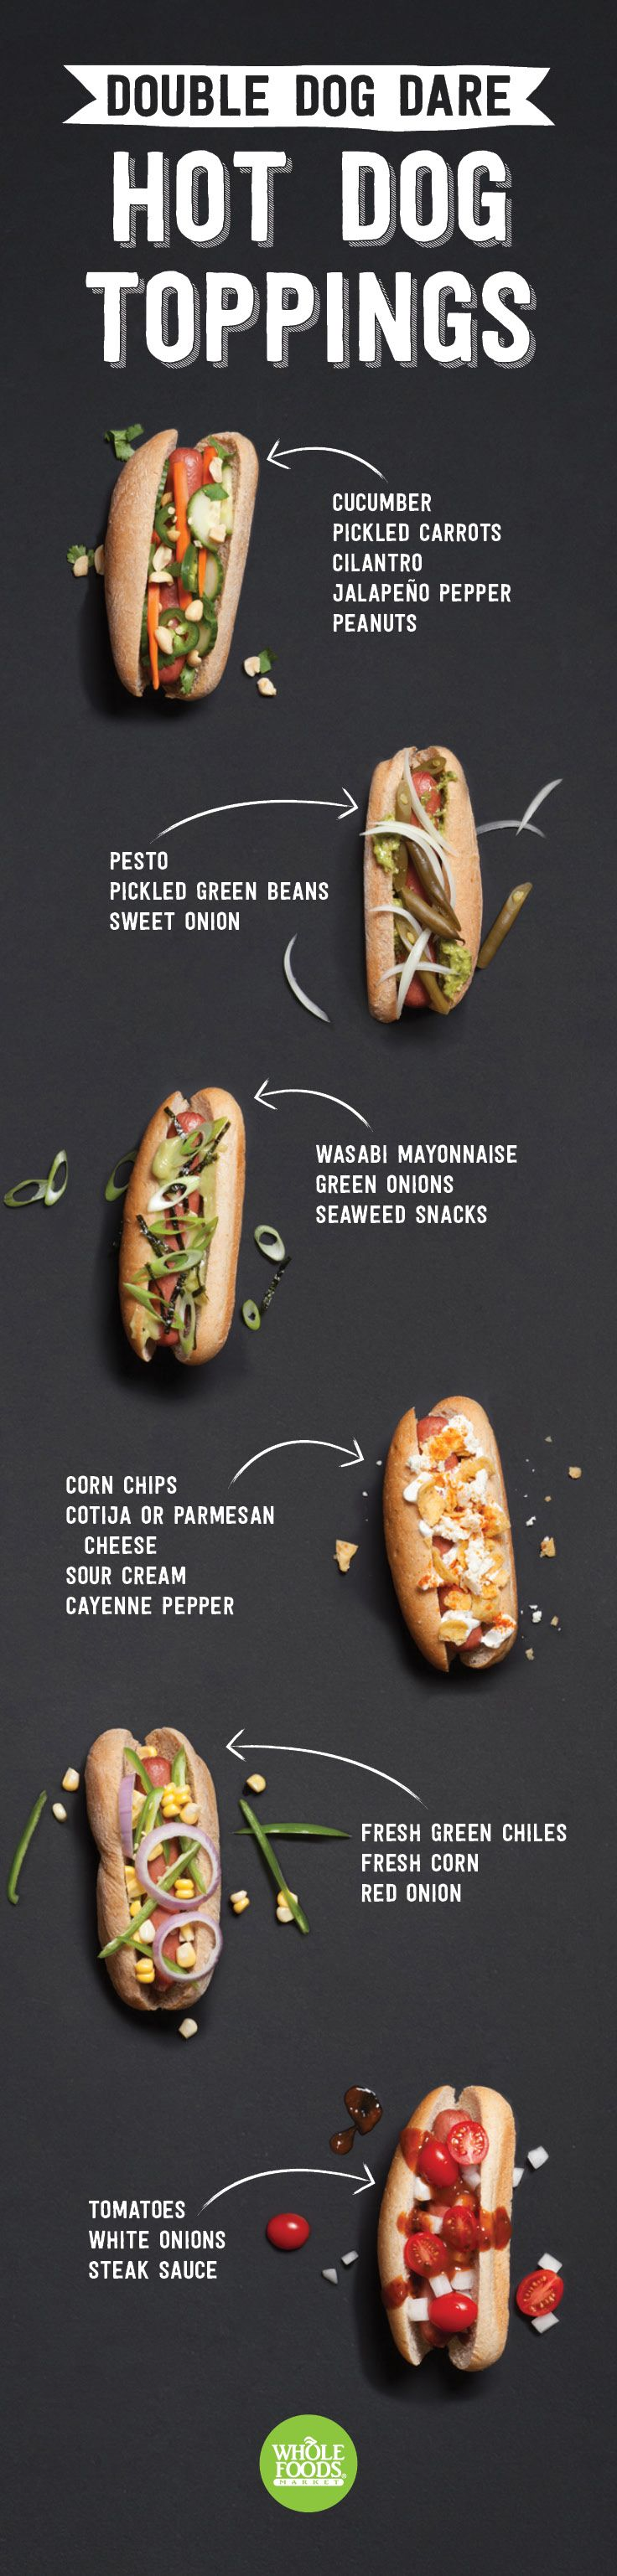 Seems super appropriate for National Hot Dog Day, right?! If you're trying to come up with a killer recipe and/or delicious and new ways to top your dogs, look no further. We've got inspirations from Thai food, German, Latin, Japanese, and all sorts of other global flavors!